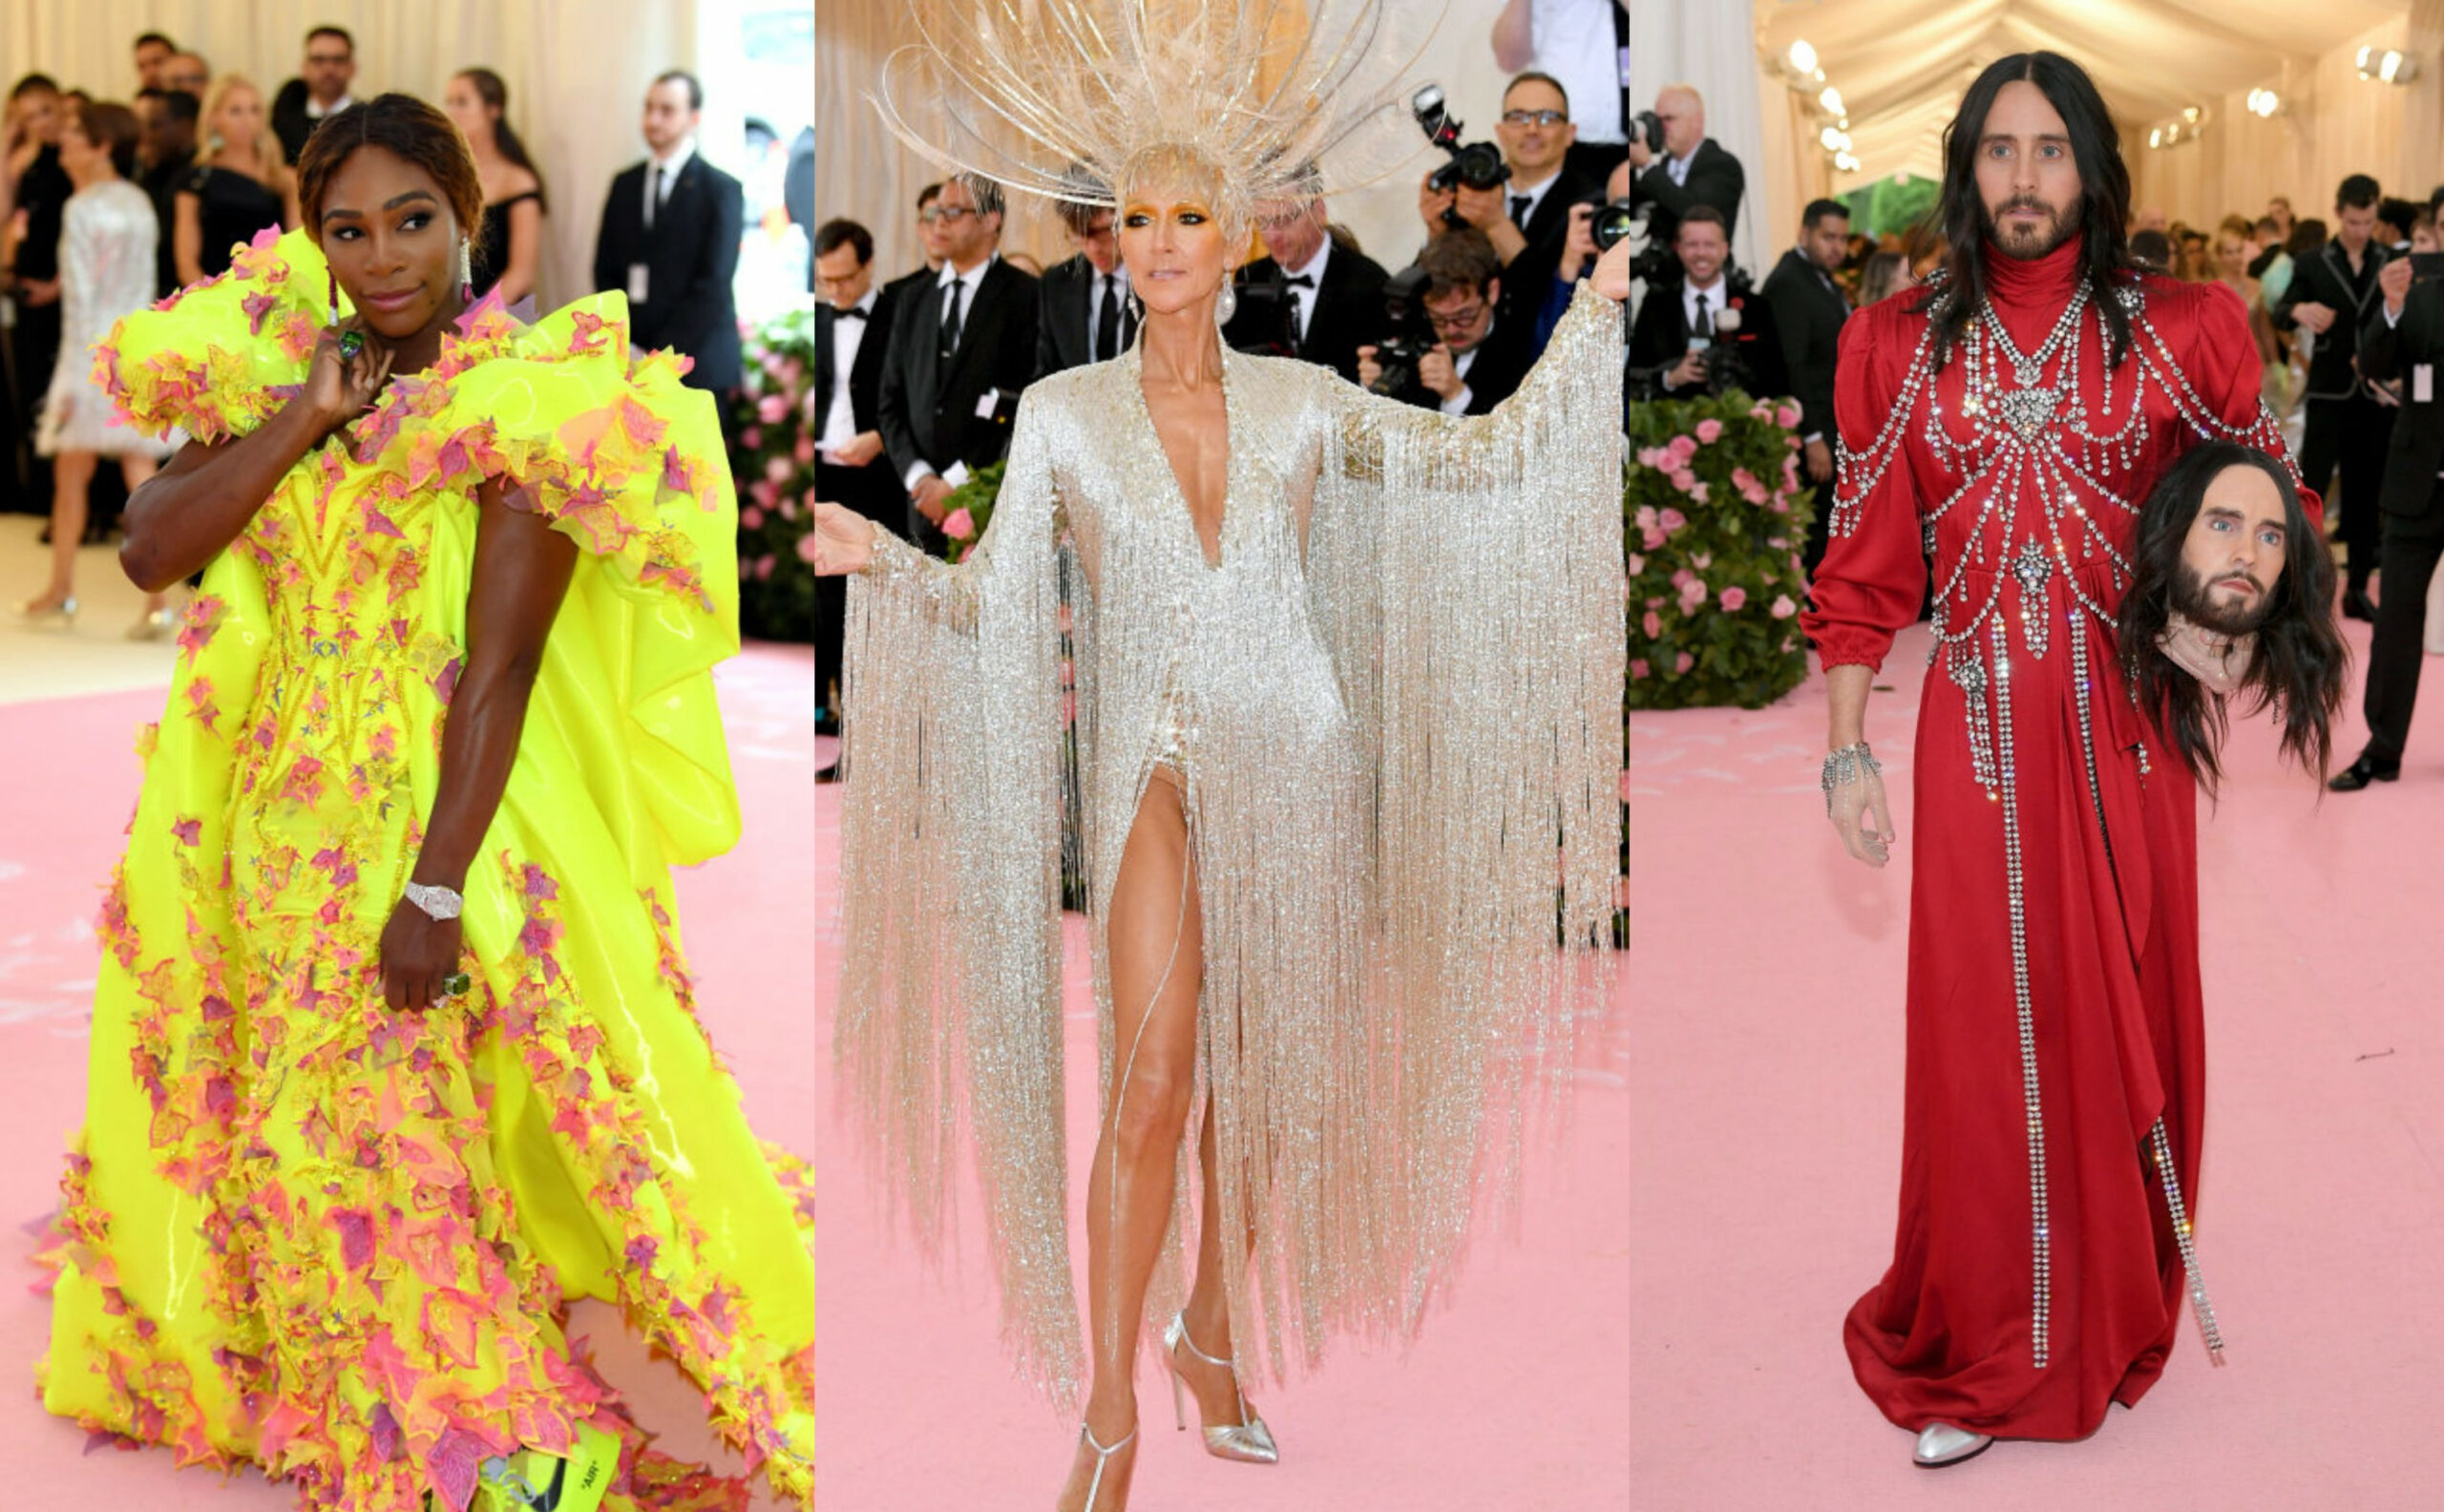 Met Gala 10: The most dramatic looks on fashion's biggest night